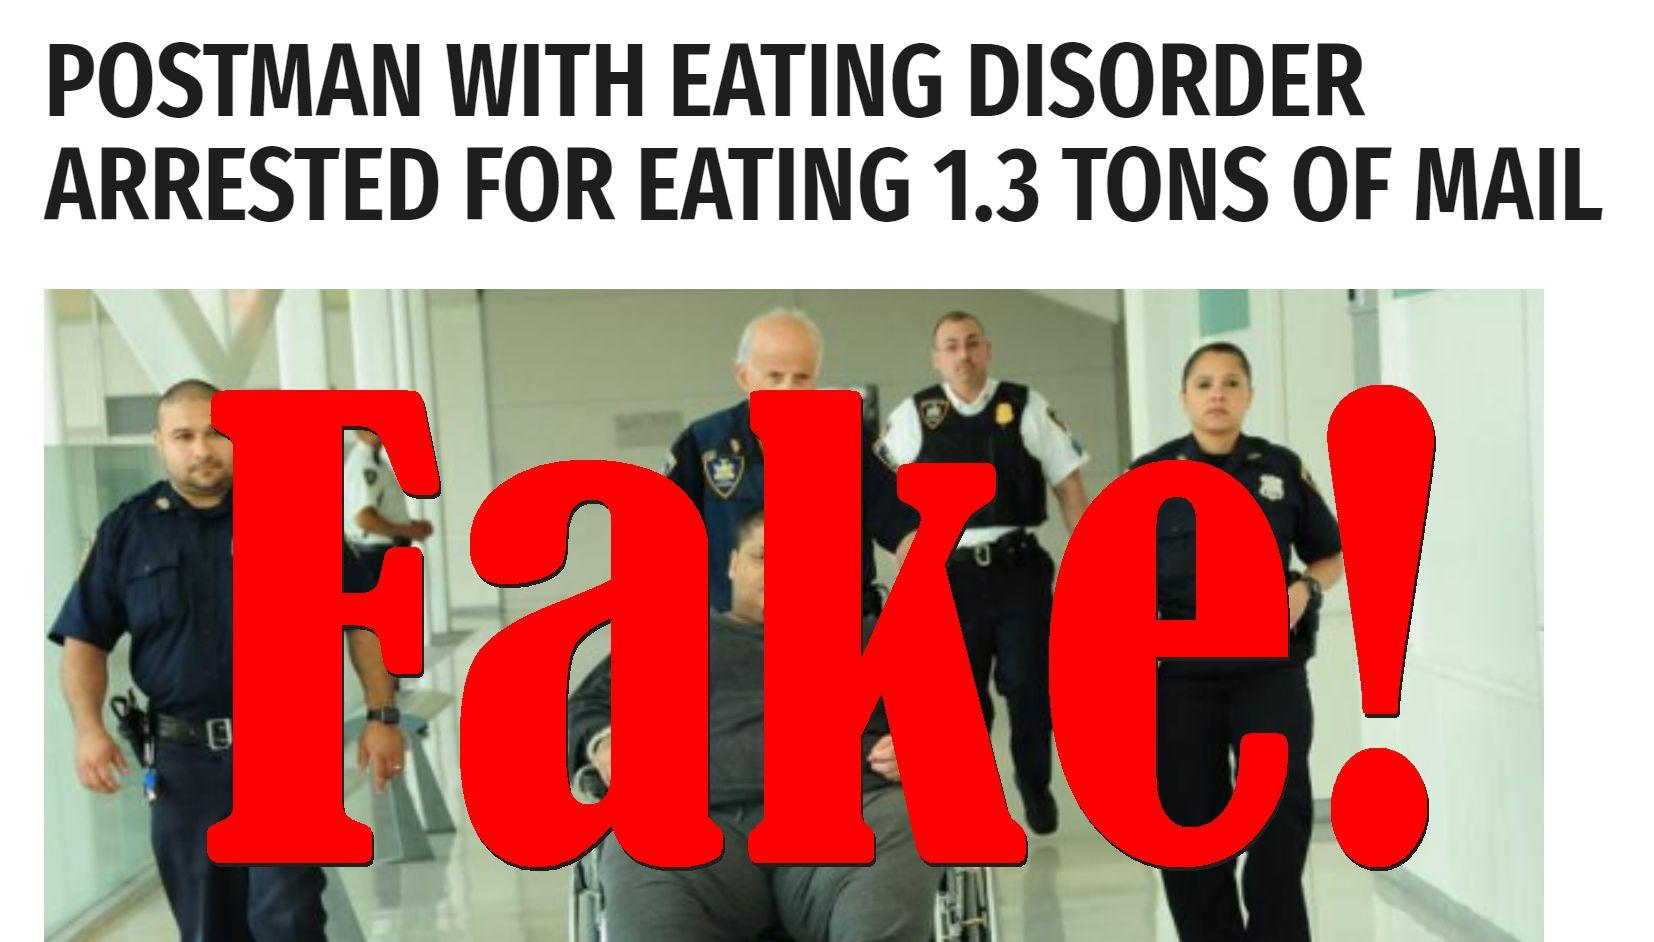 Fake News: NO Postman With Eating Disorder Arrested, Did NOT Eat 1.3 Tons of Mail